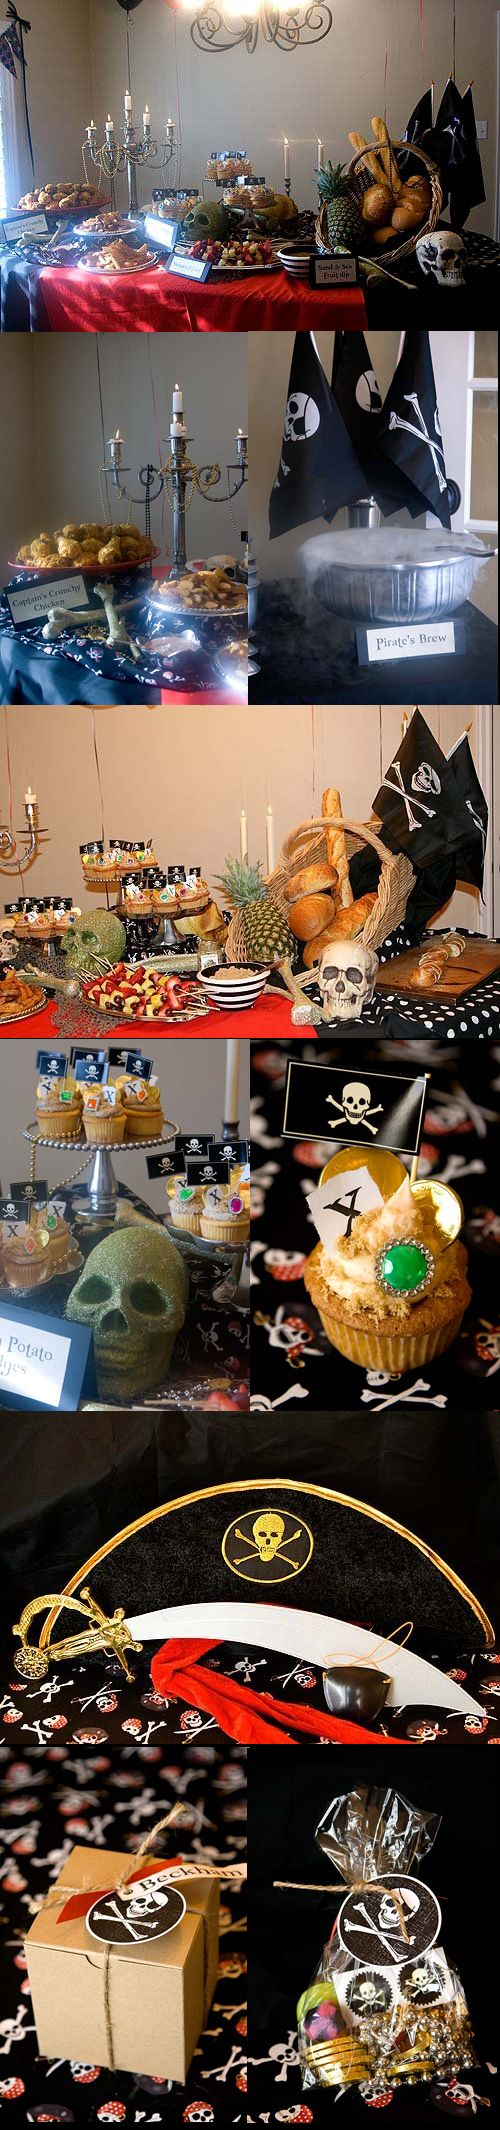 Look at the details: nautical netting, pineapple, silver candelabra [draped with jewels] & serving dishes, skull & bones, black & white bowls & fabric, pirate flags. 'Smoking' pirate punch. This lady pulls off an impressive pirate party -- and this was for a child's birthday party! Arrr! Halloween Pirate's Nightmare in the Caribbean Party Decorations & Ideas